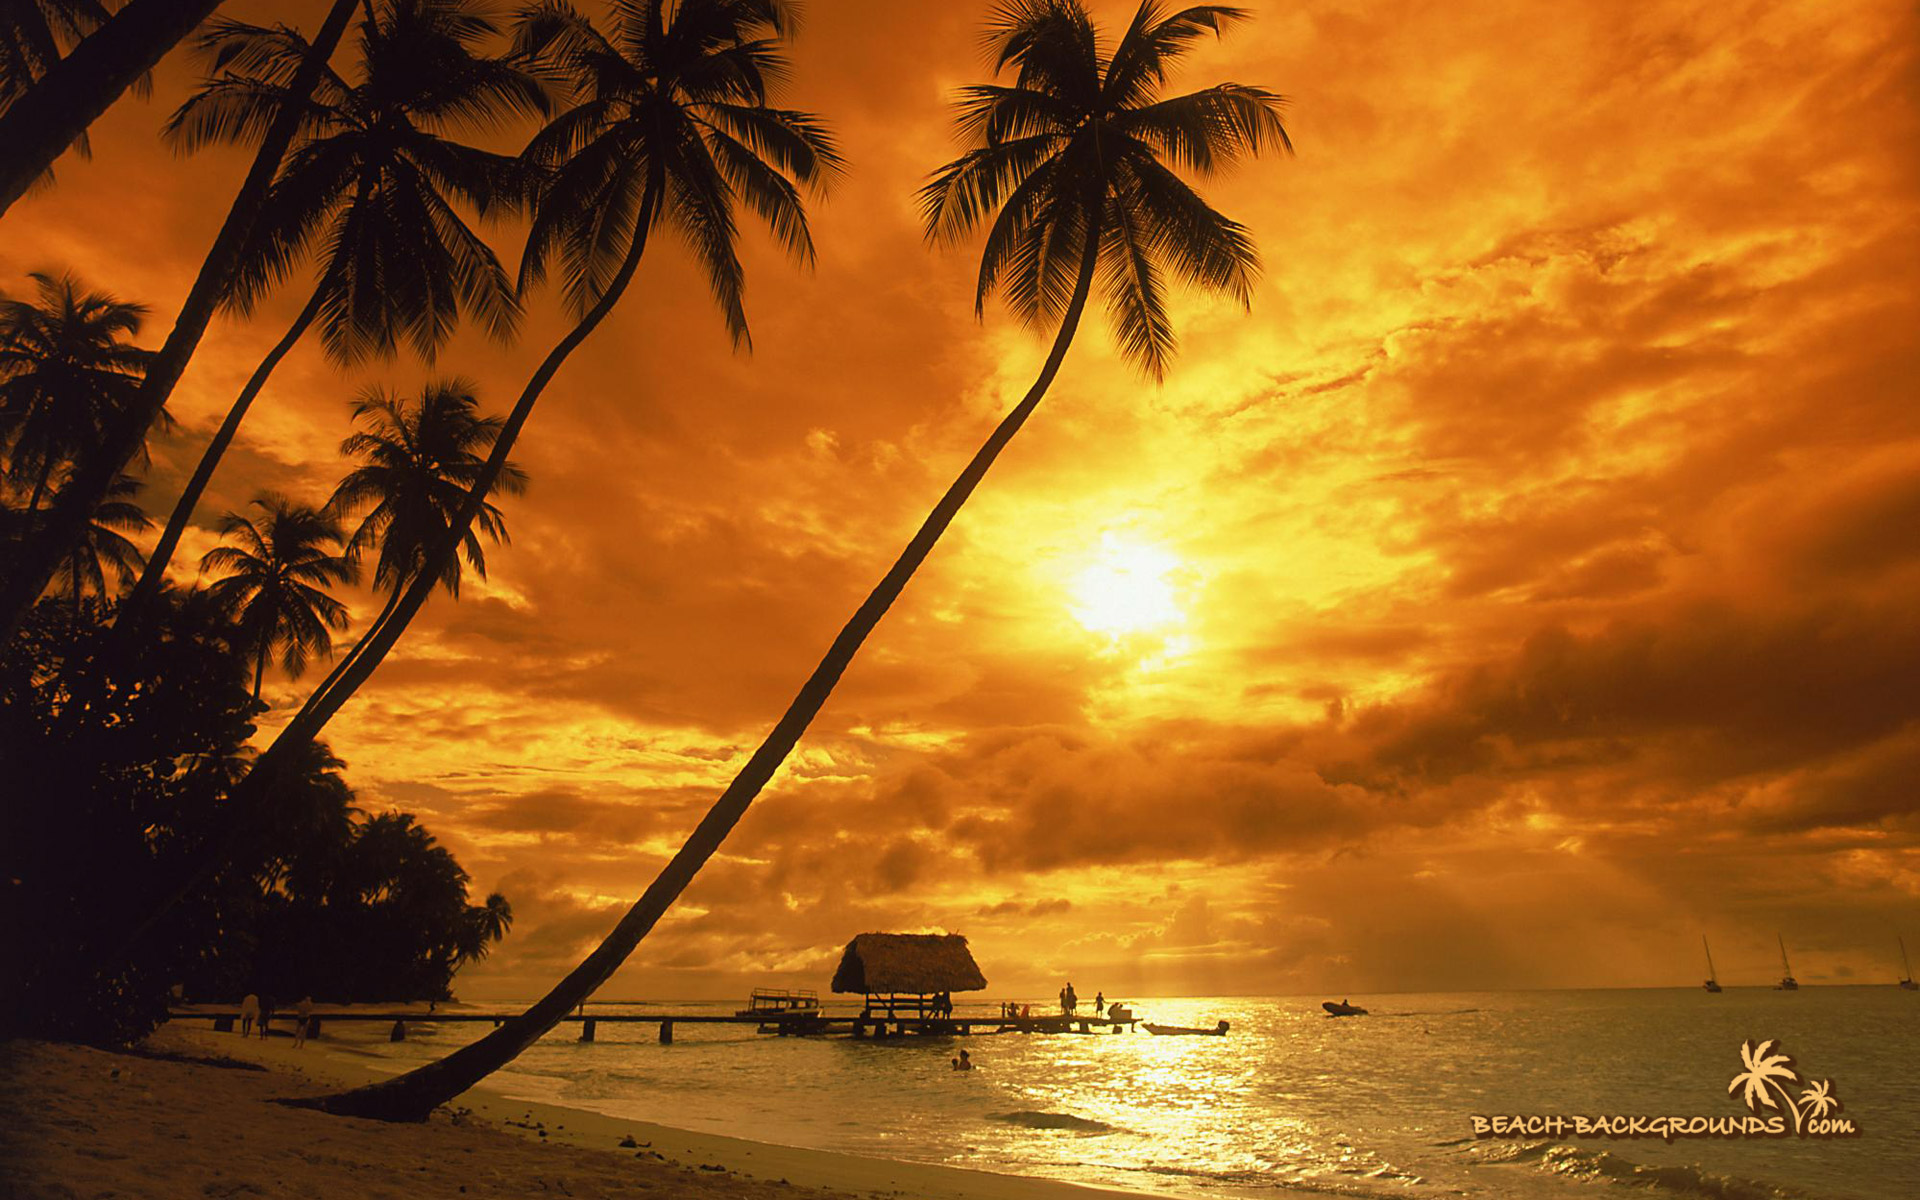 tropical island sunset photos tropical island sunset images tropical 1920x1200